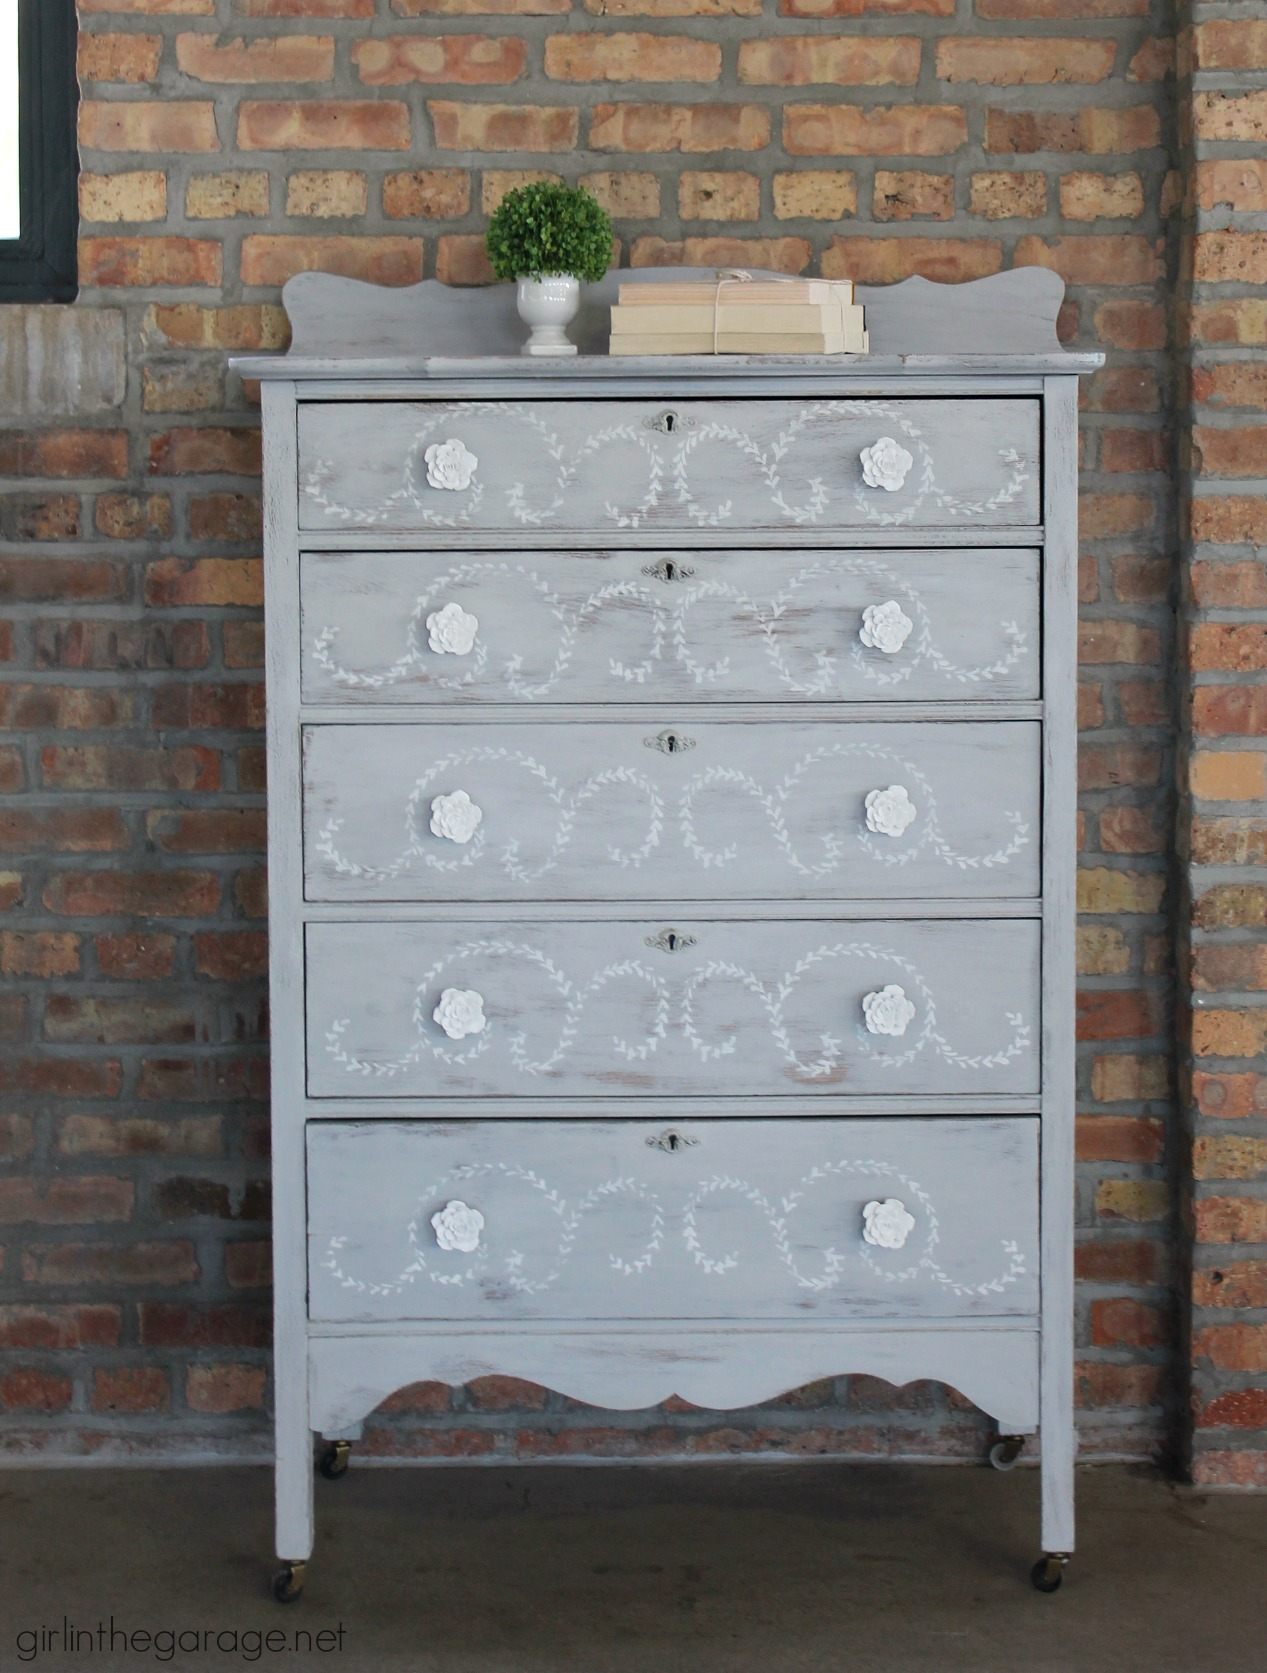 Stenciled highboy dresser - Girl in the Garage